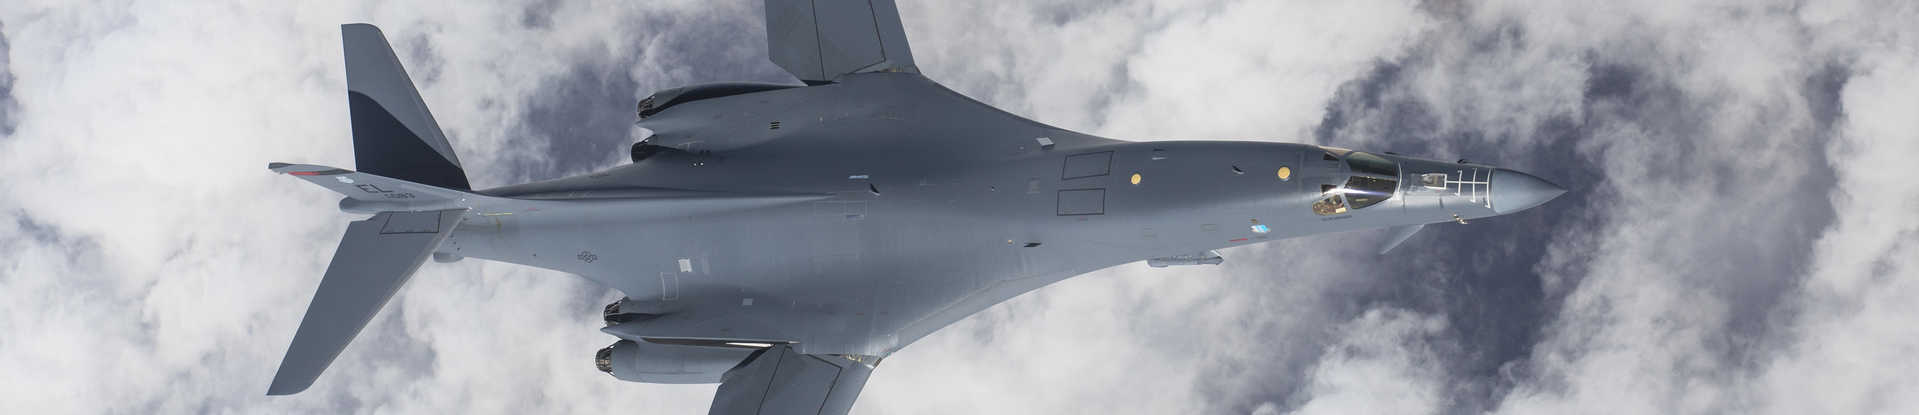 Press Release-SwRI awarded $12 million U.S. Air Force contract for B-1B system redesign